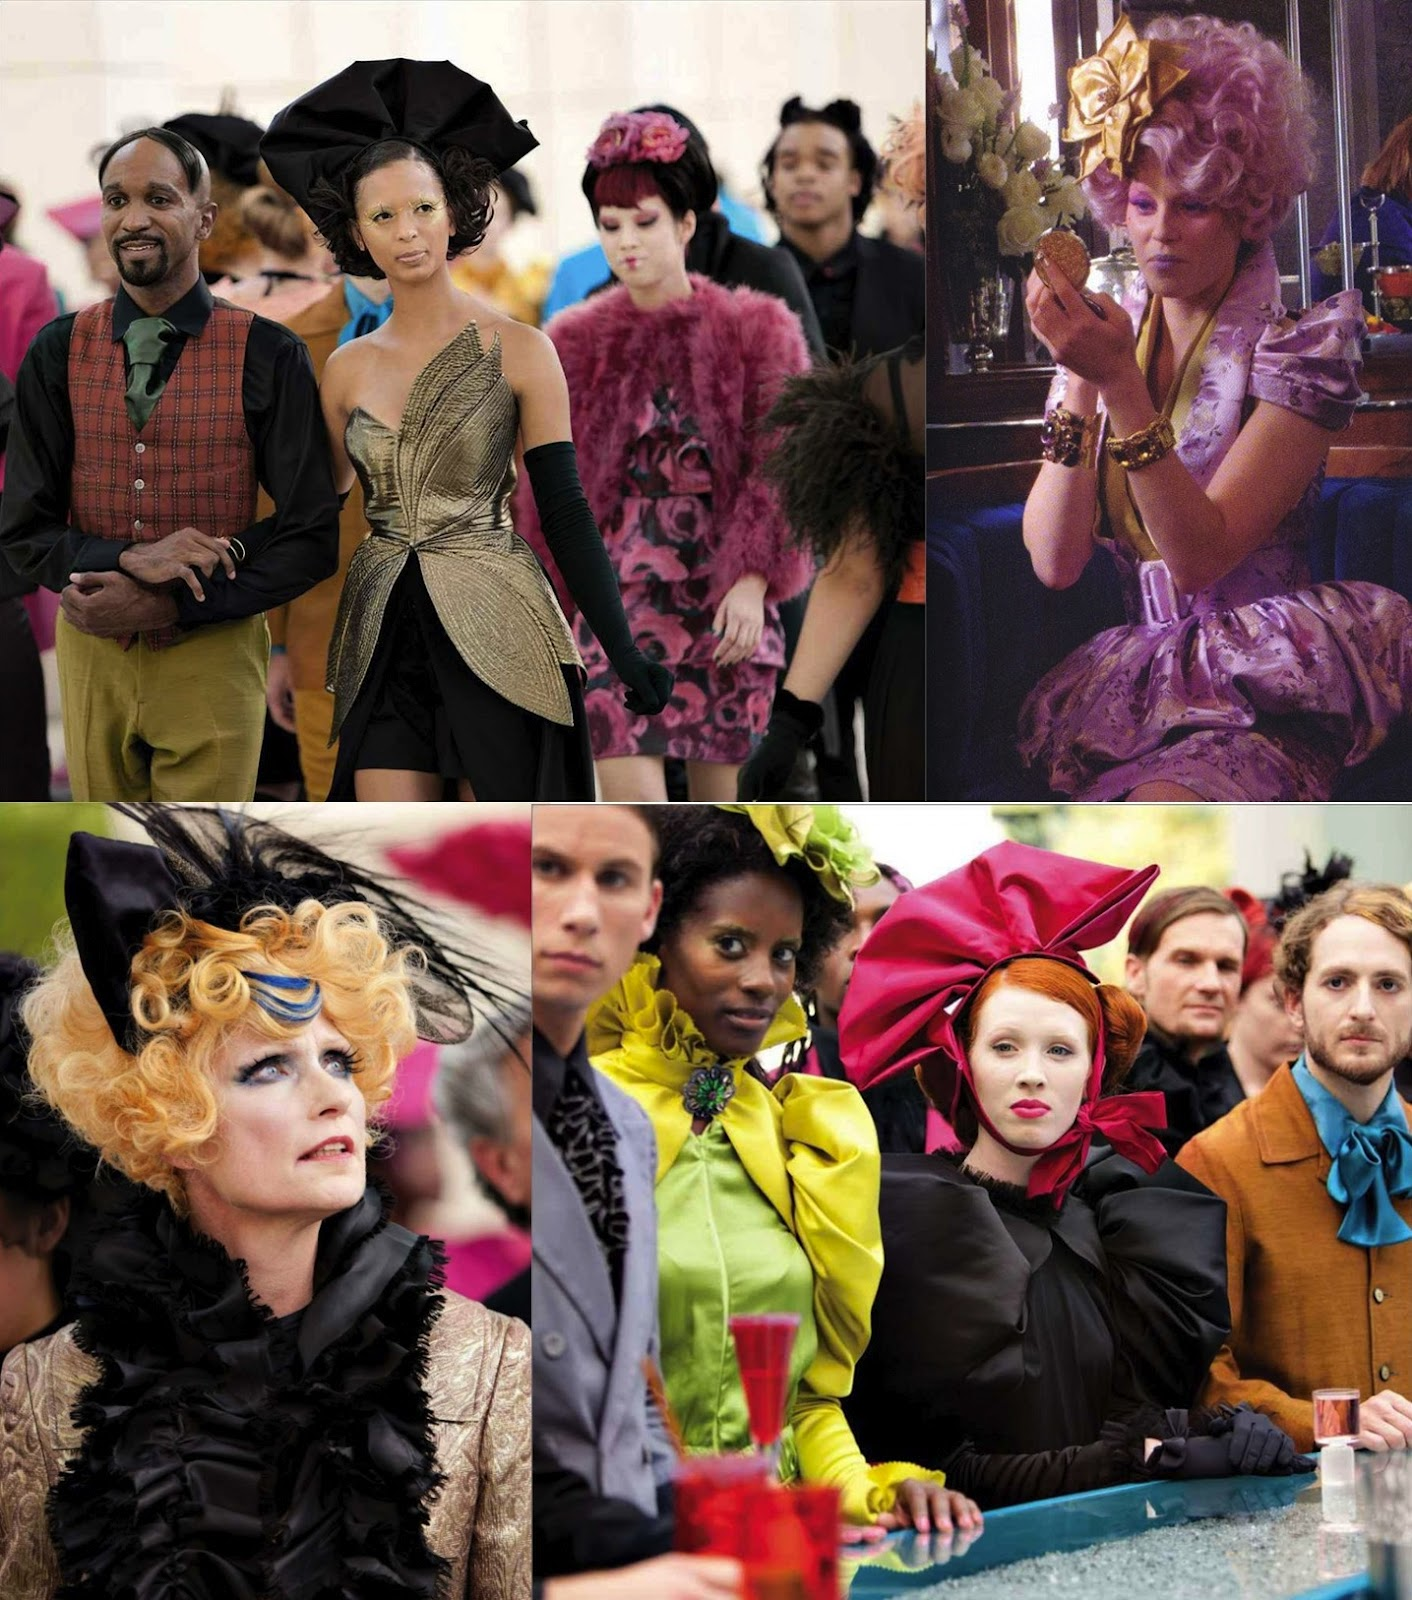 Conspicuous Consumption Audience Relationships With Capitol Fashion In The Hunger Games